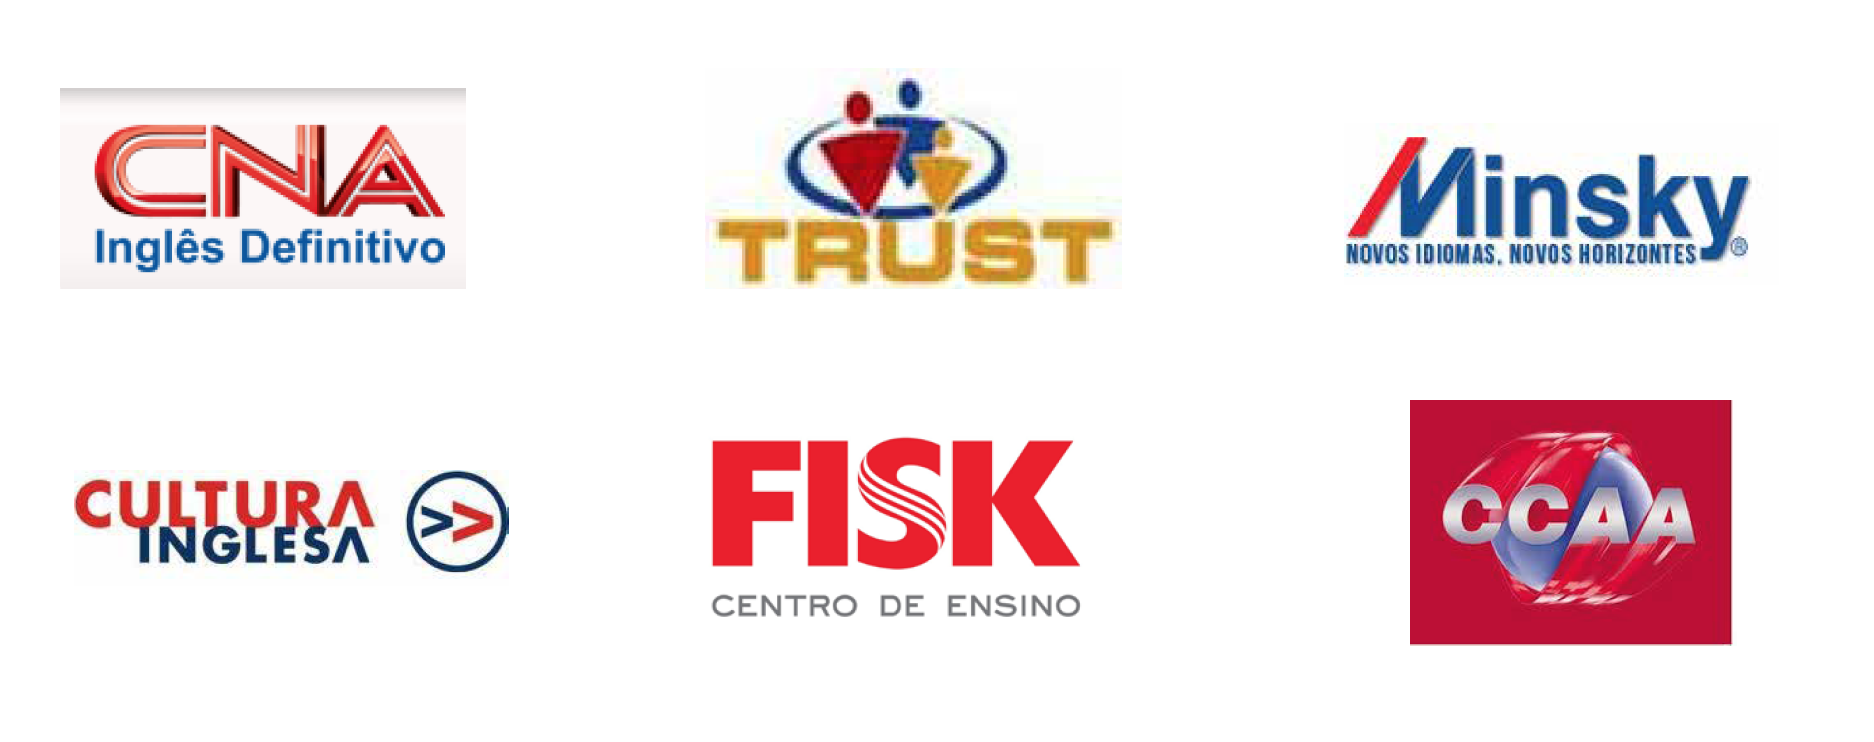 Trust previous logo among other competitors in the region.